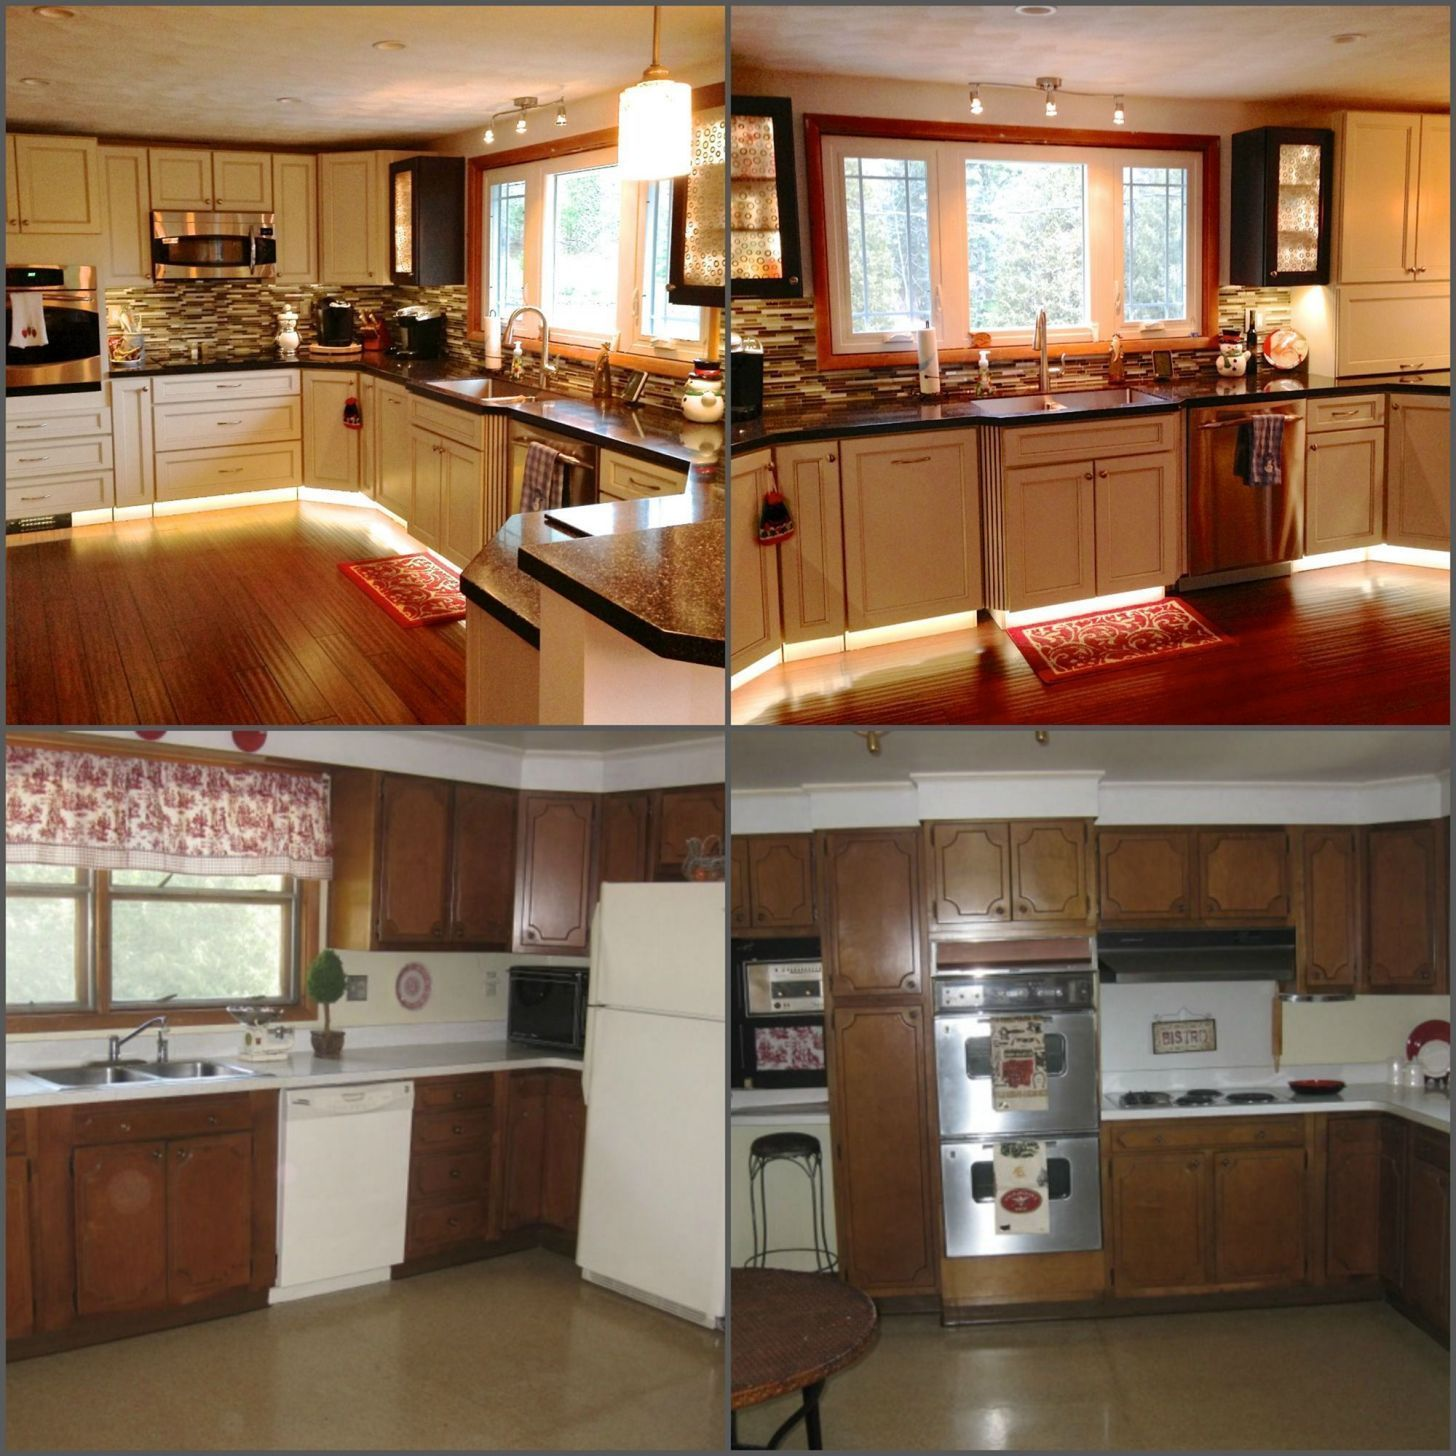 30 gorgeous mobile home interior remodel inspirations with before and after picture in 2020 on i kitchen remodel id=61844